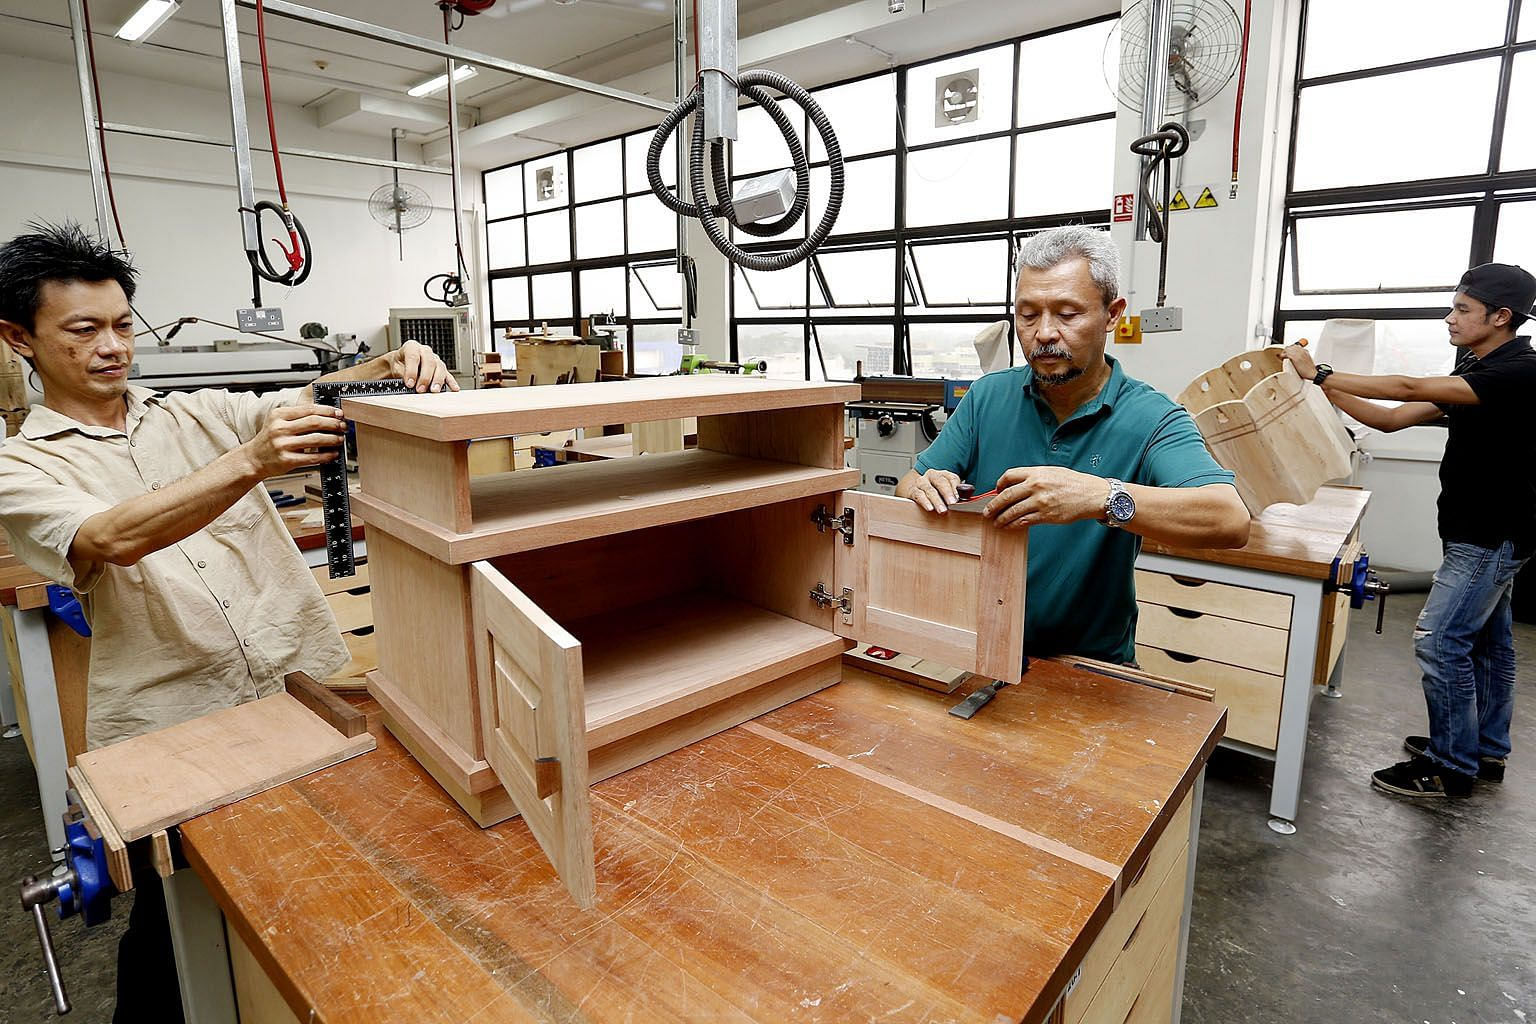 The Singapore Furniture Industries Council will offer a range of training programmes. Course fees will be fully borne by the employers, with funding support from the National Trades Union Congress' e2i and the Singapore Workforce Development Agency.